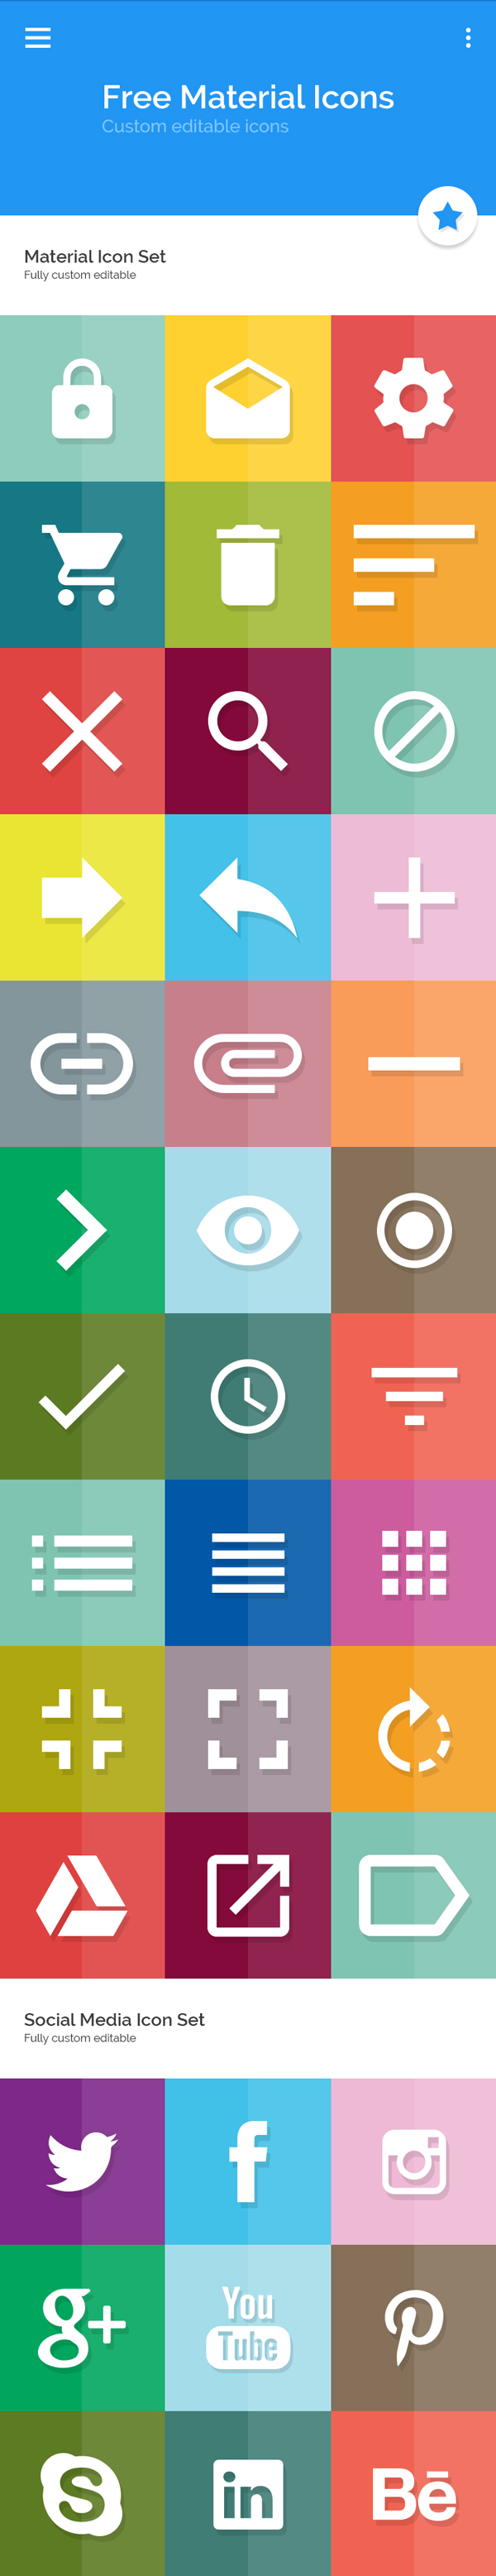 Free Material Icon Set (38 Icons)